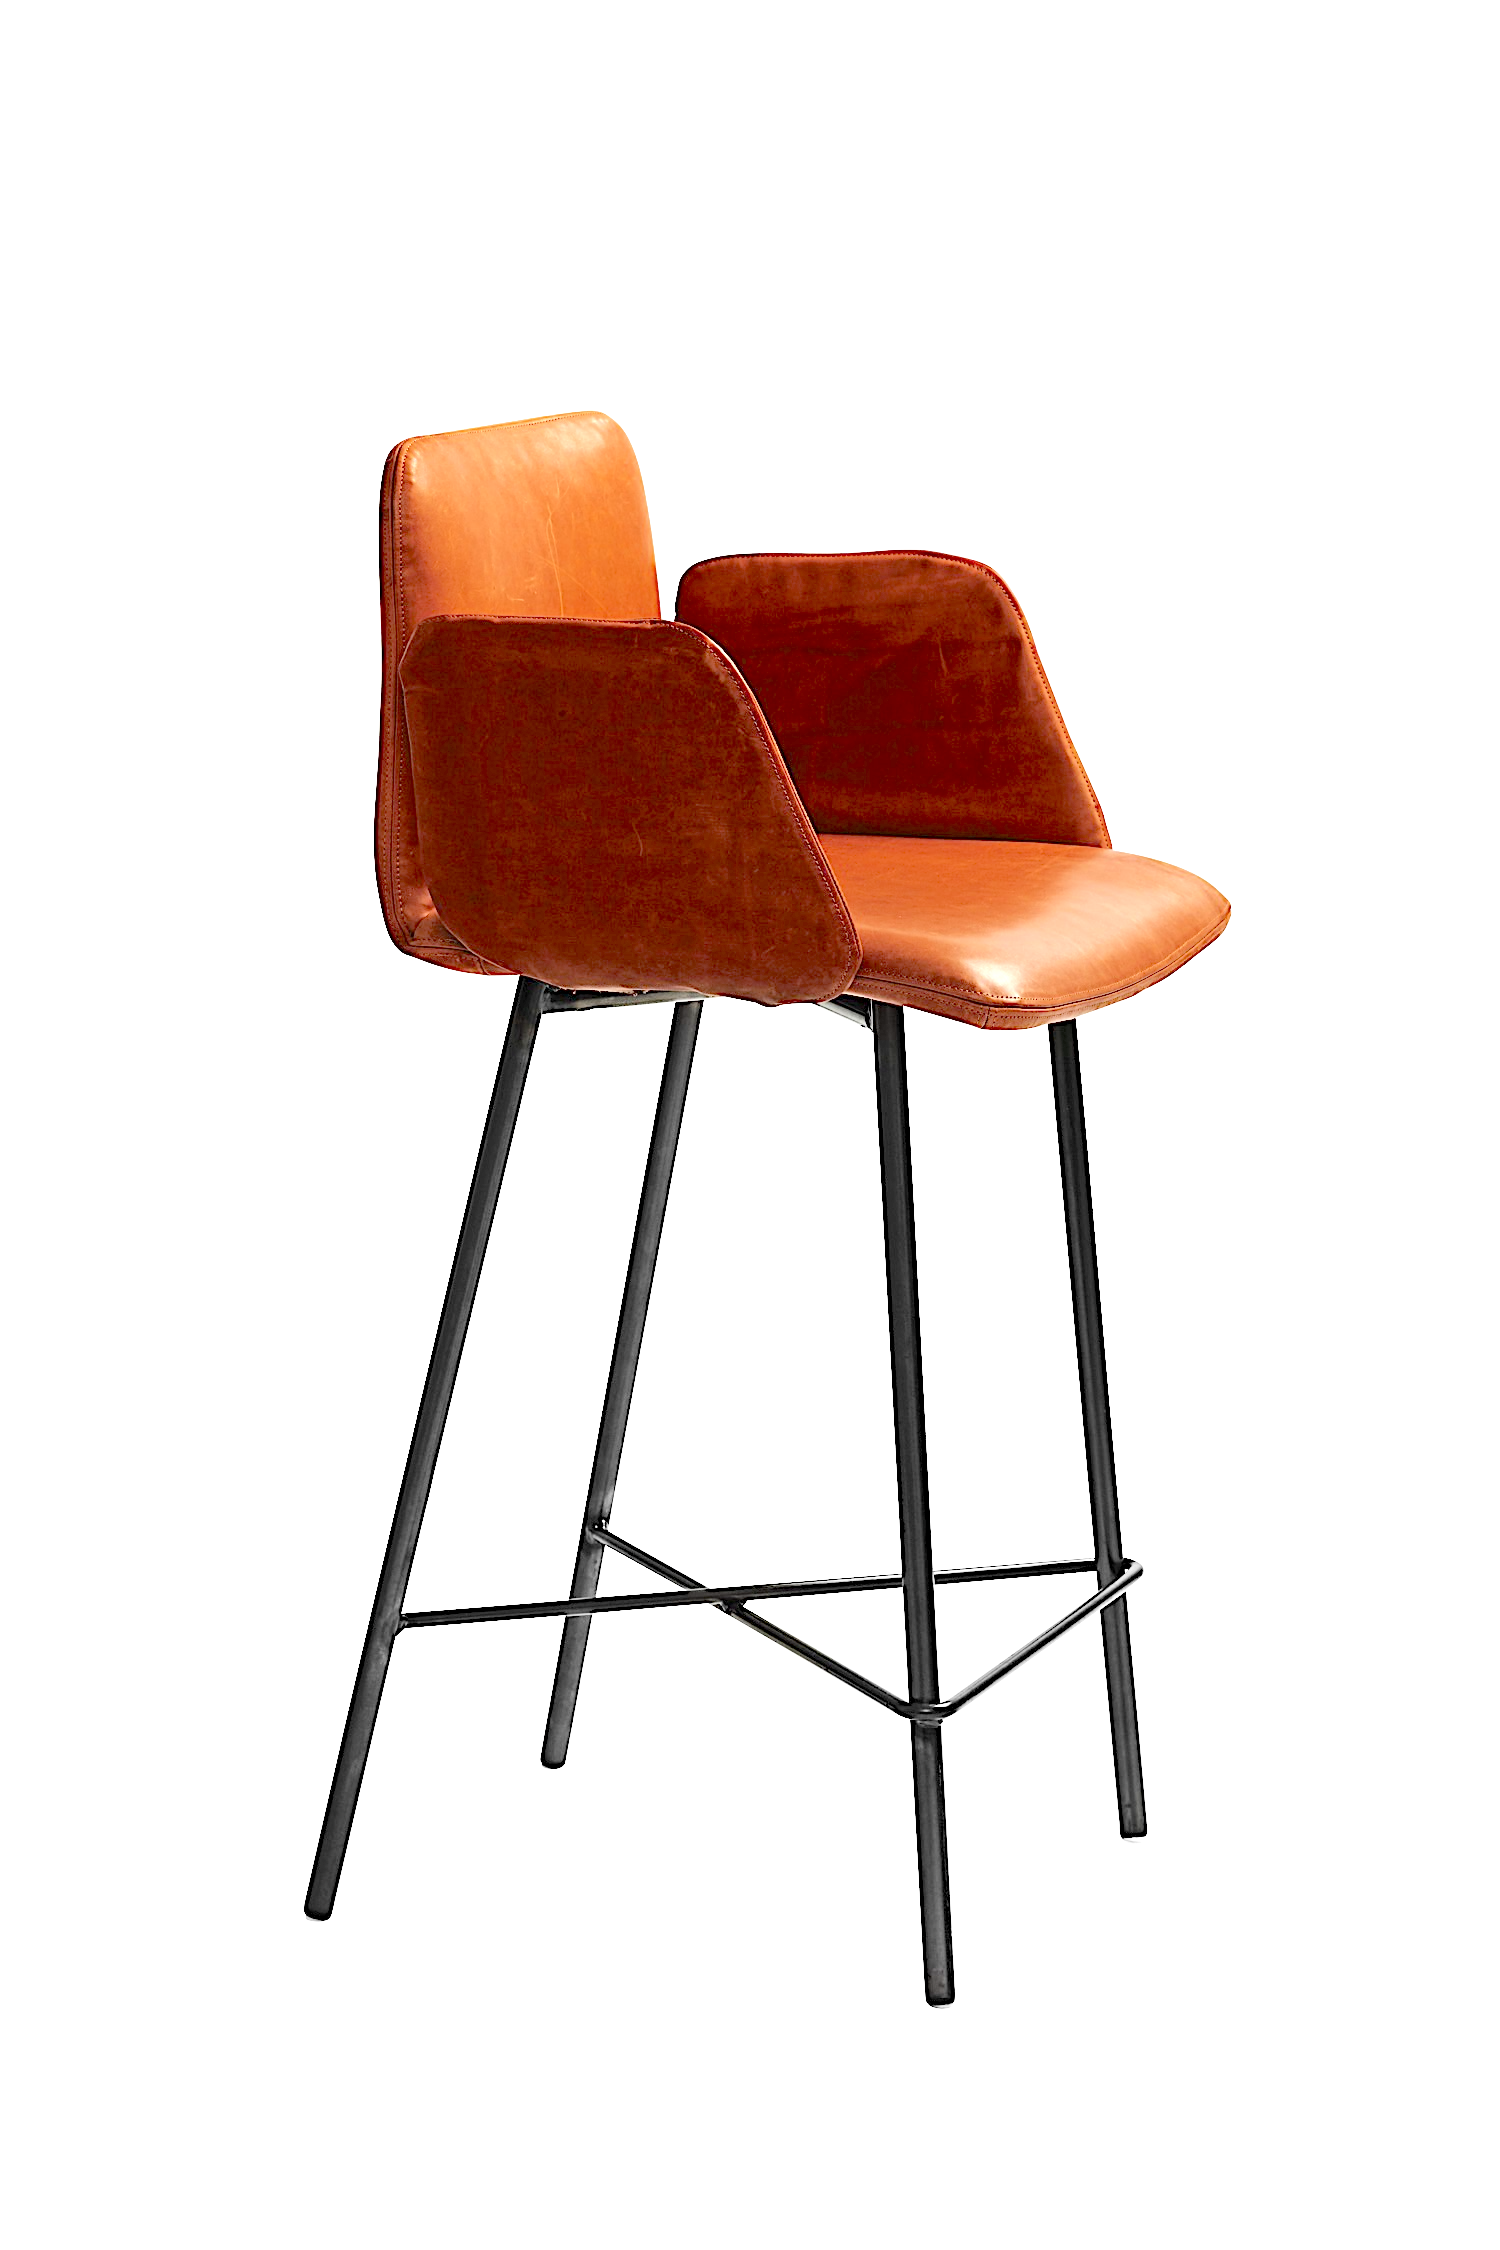 ALPHI barstool with arms